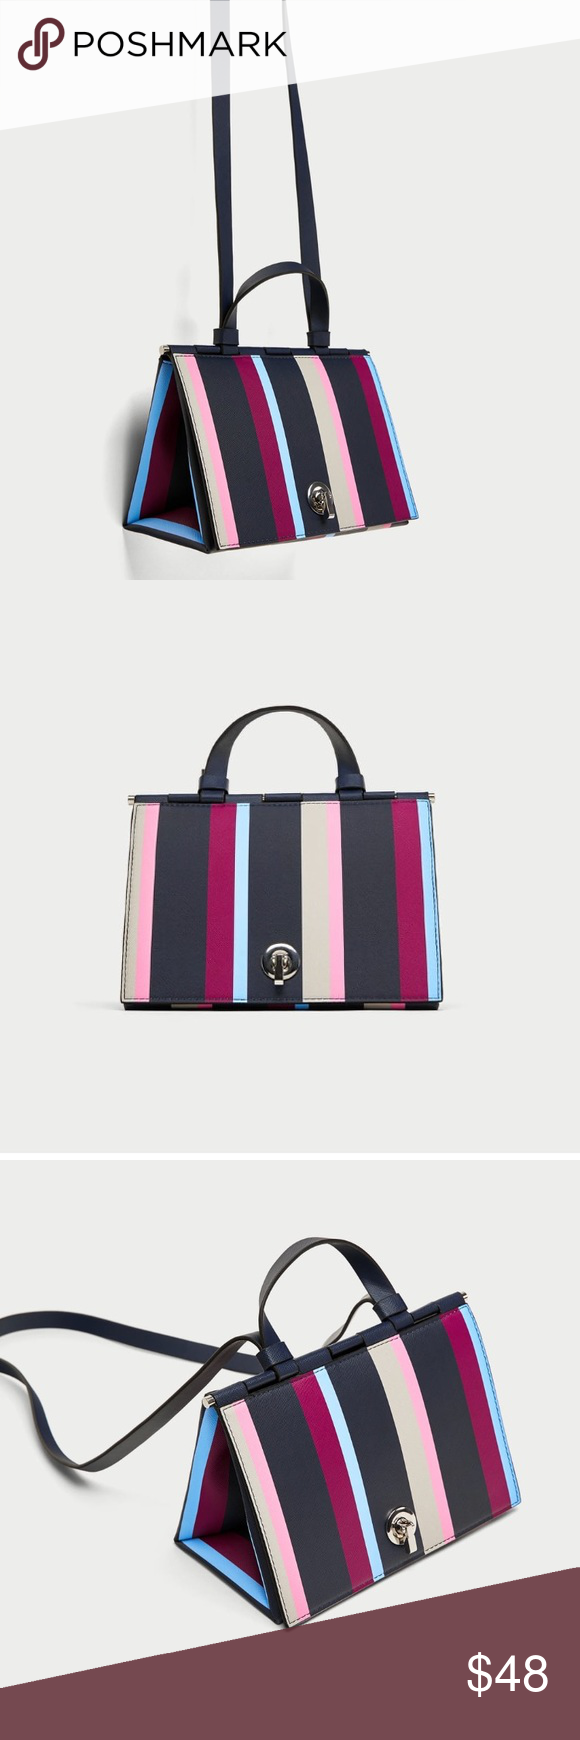 Multicolored Stripes Triangle Bag Multicolored City Bag With a geometric shape and striped print in a combination of colors. Features top handle, shoulder strap, lined interior and metal fastening Zara Bags Shoulder Bags